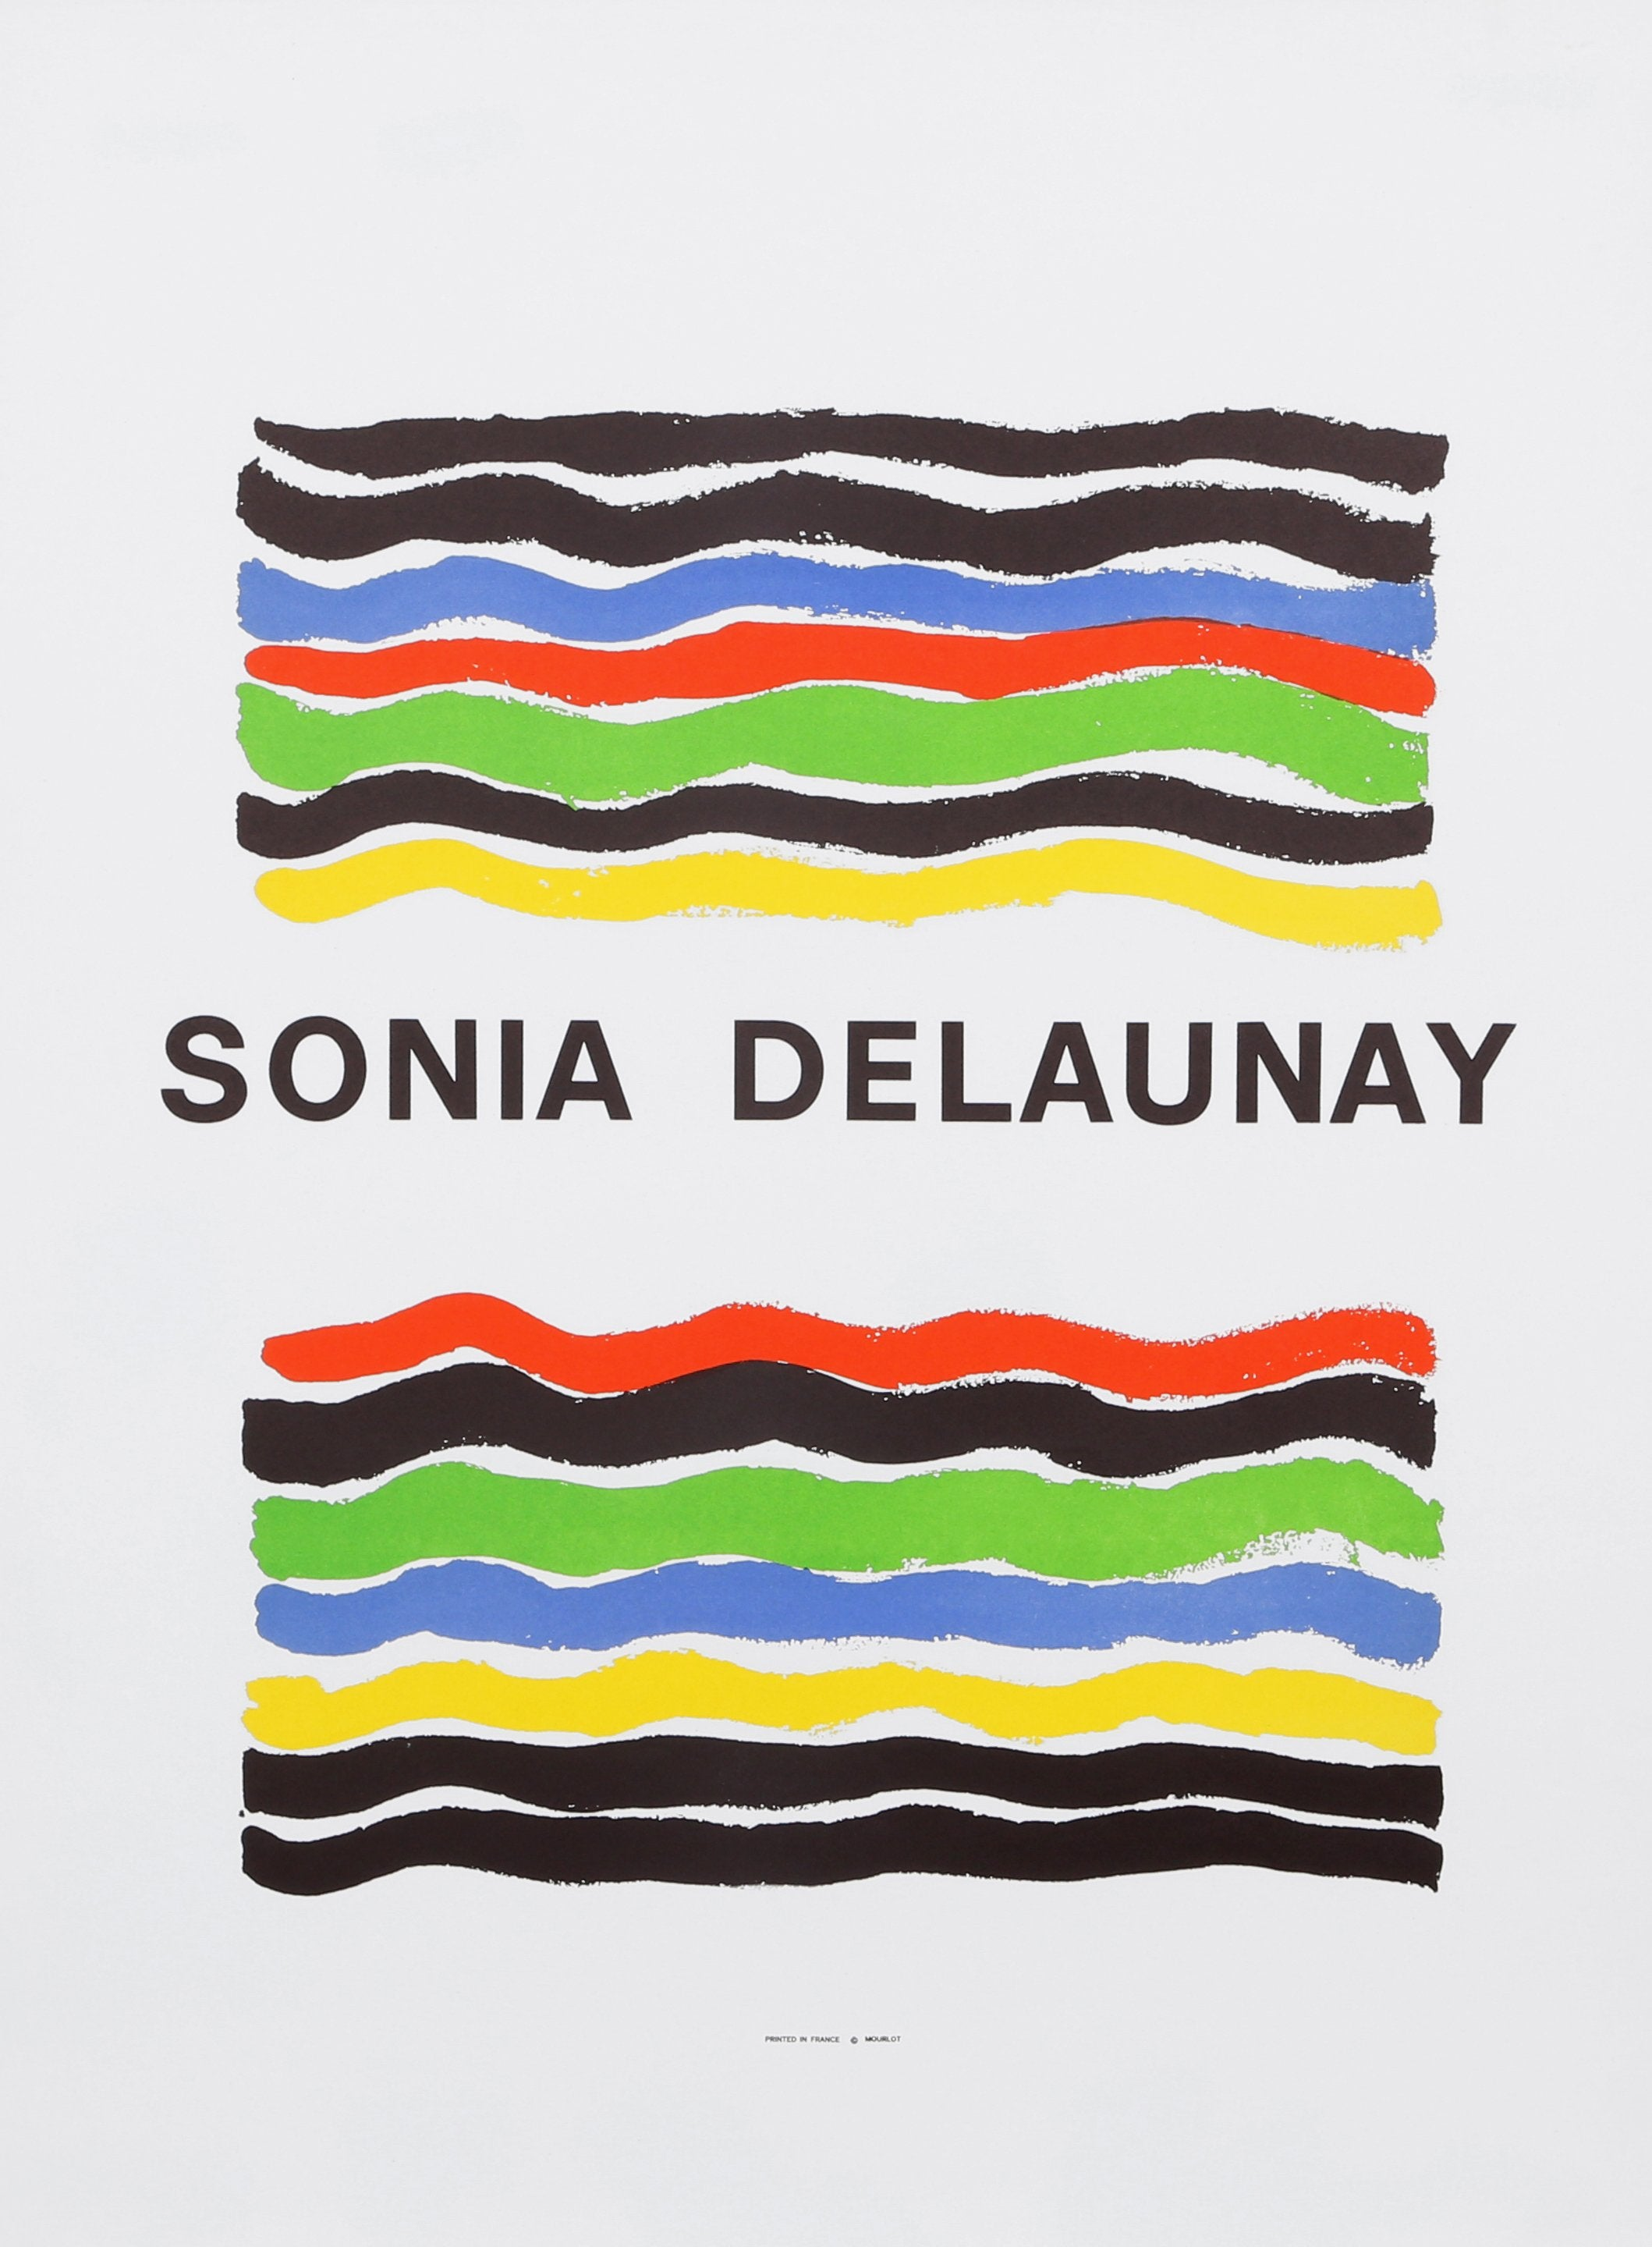 Sonia Delaunay, Mourlot Poster - RoGallery